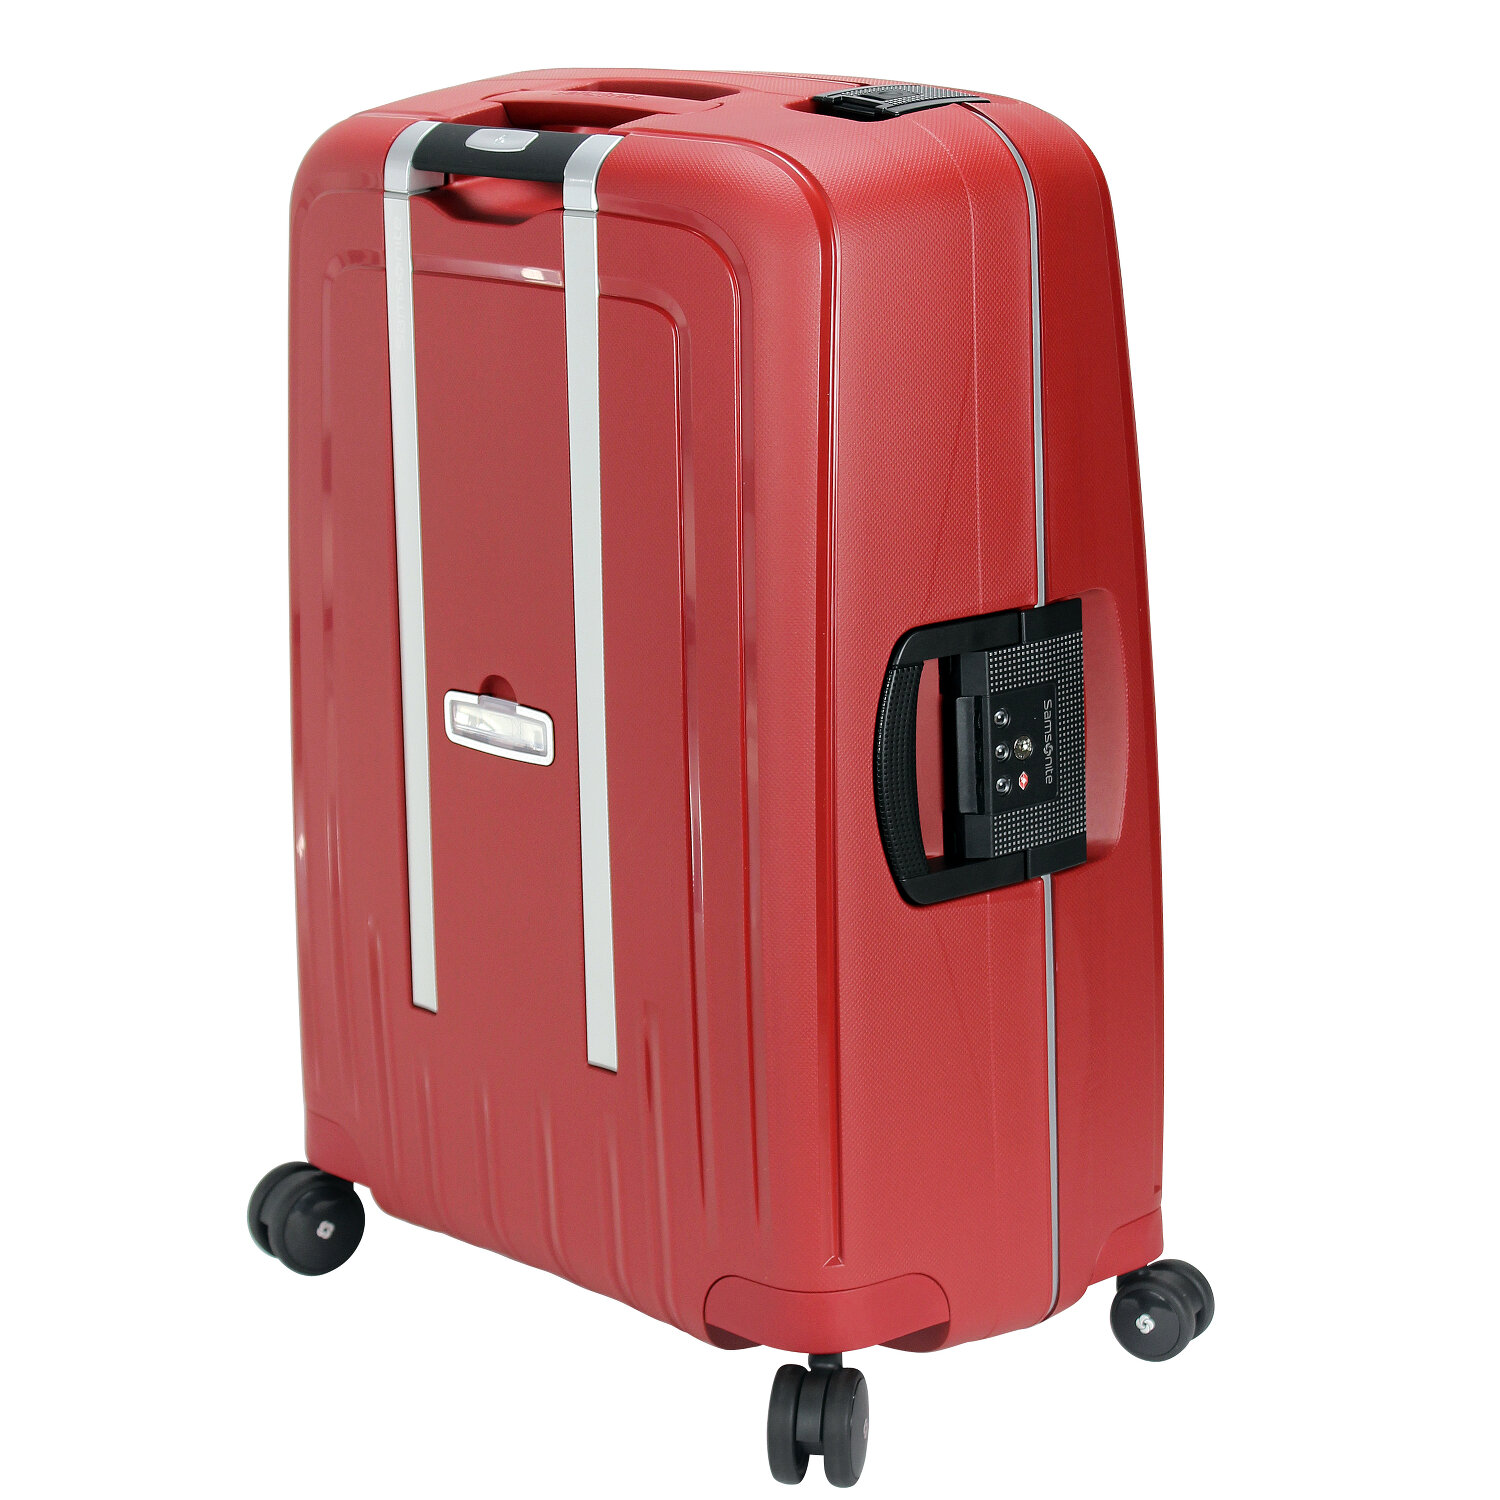 Spinner 4 Samsonite S'cure Green Valise Metallic Dlx Roulettes Cm 81 H9WDeE2IY